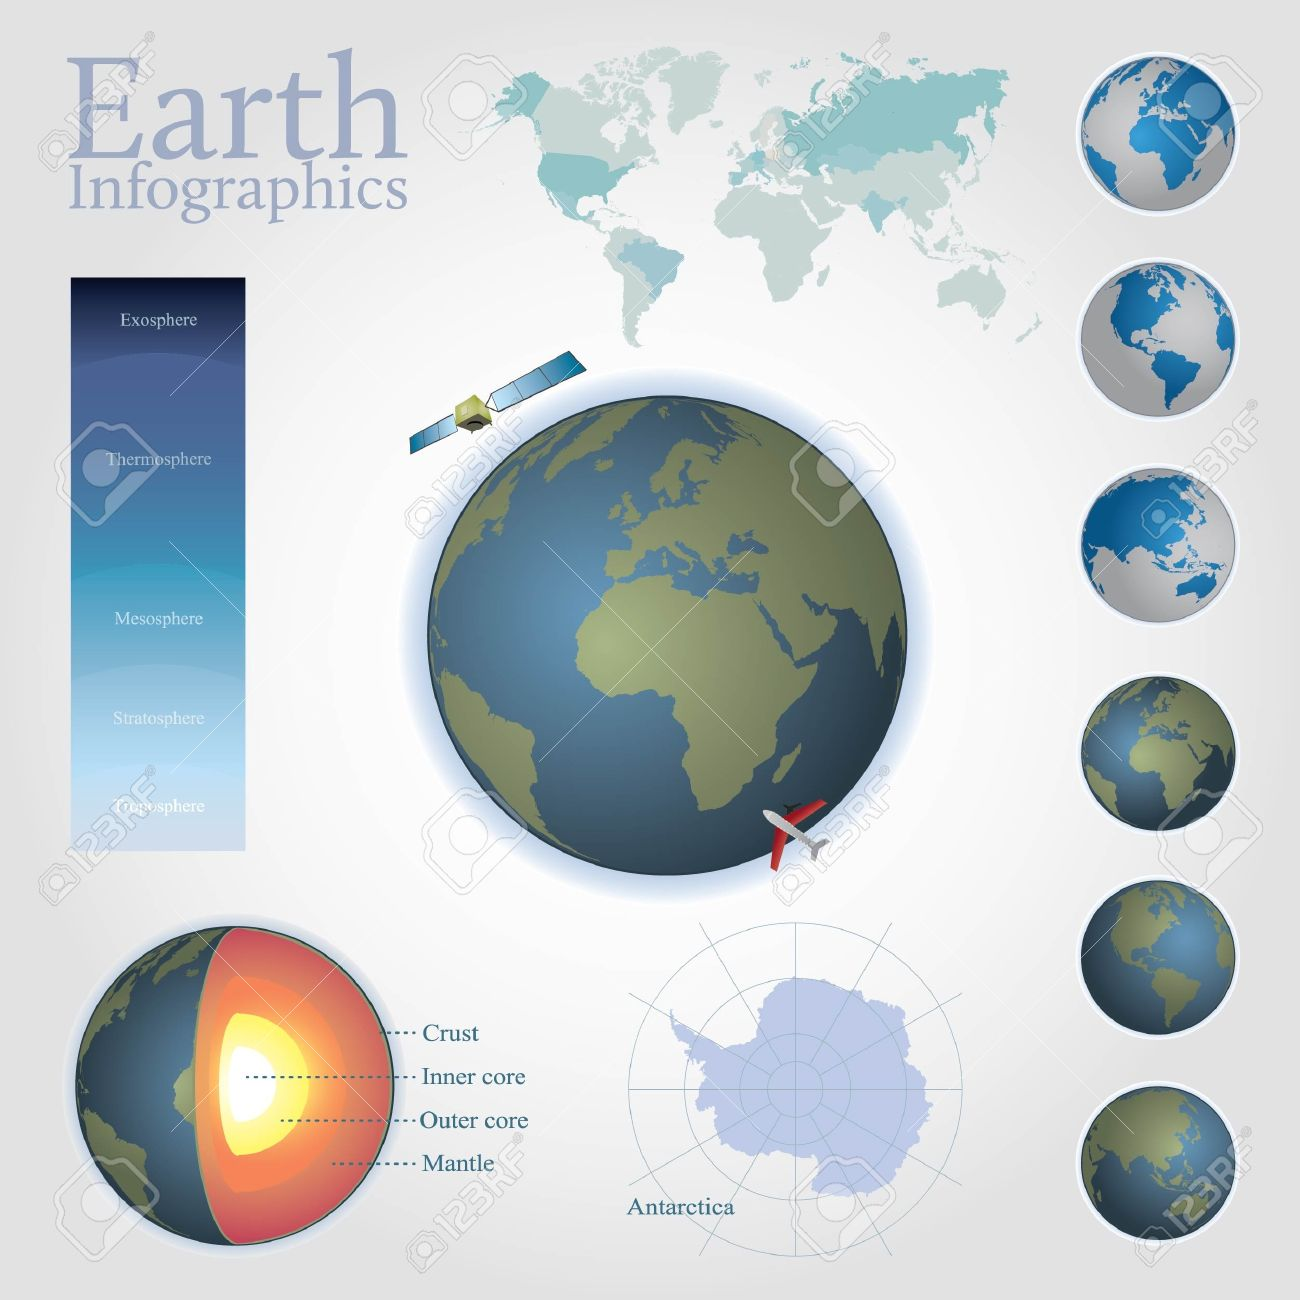 Earth infographics including editable world map separate countries earth infographics including editable world map separate countries antarctica map structure of gumiabroncs Gallery